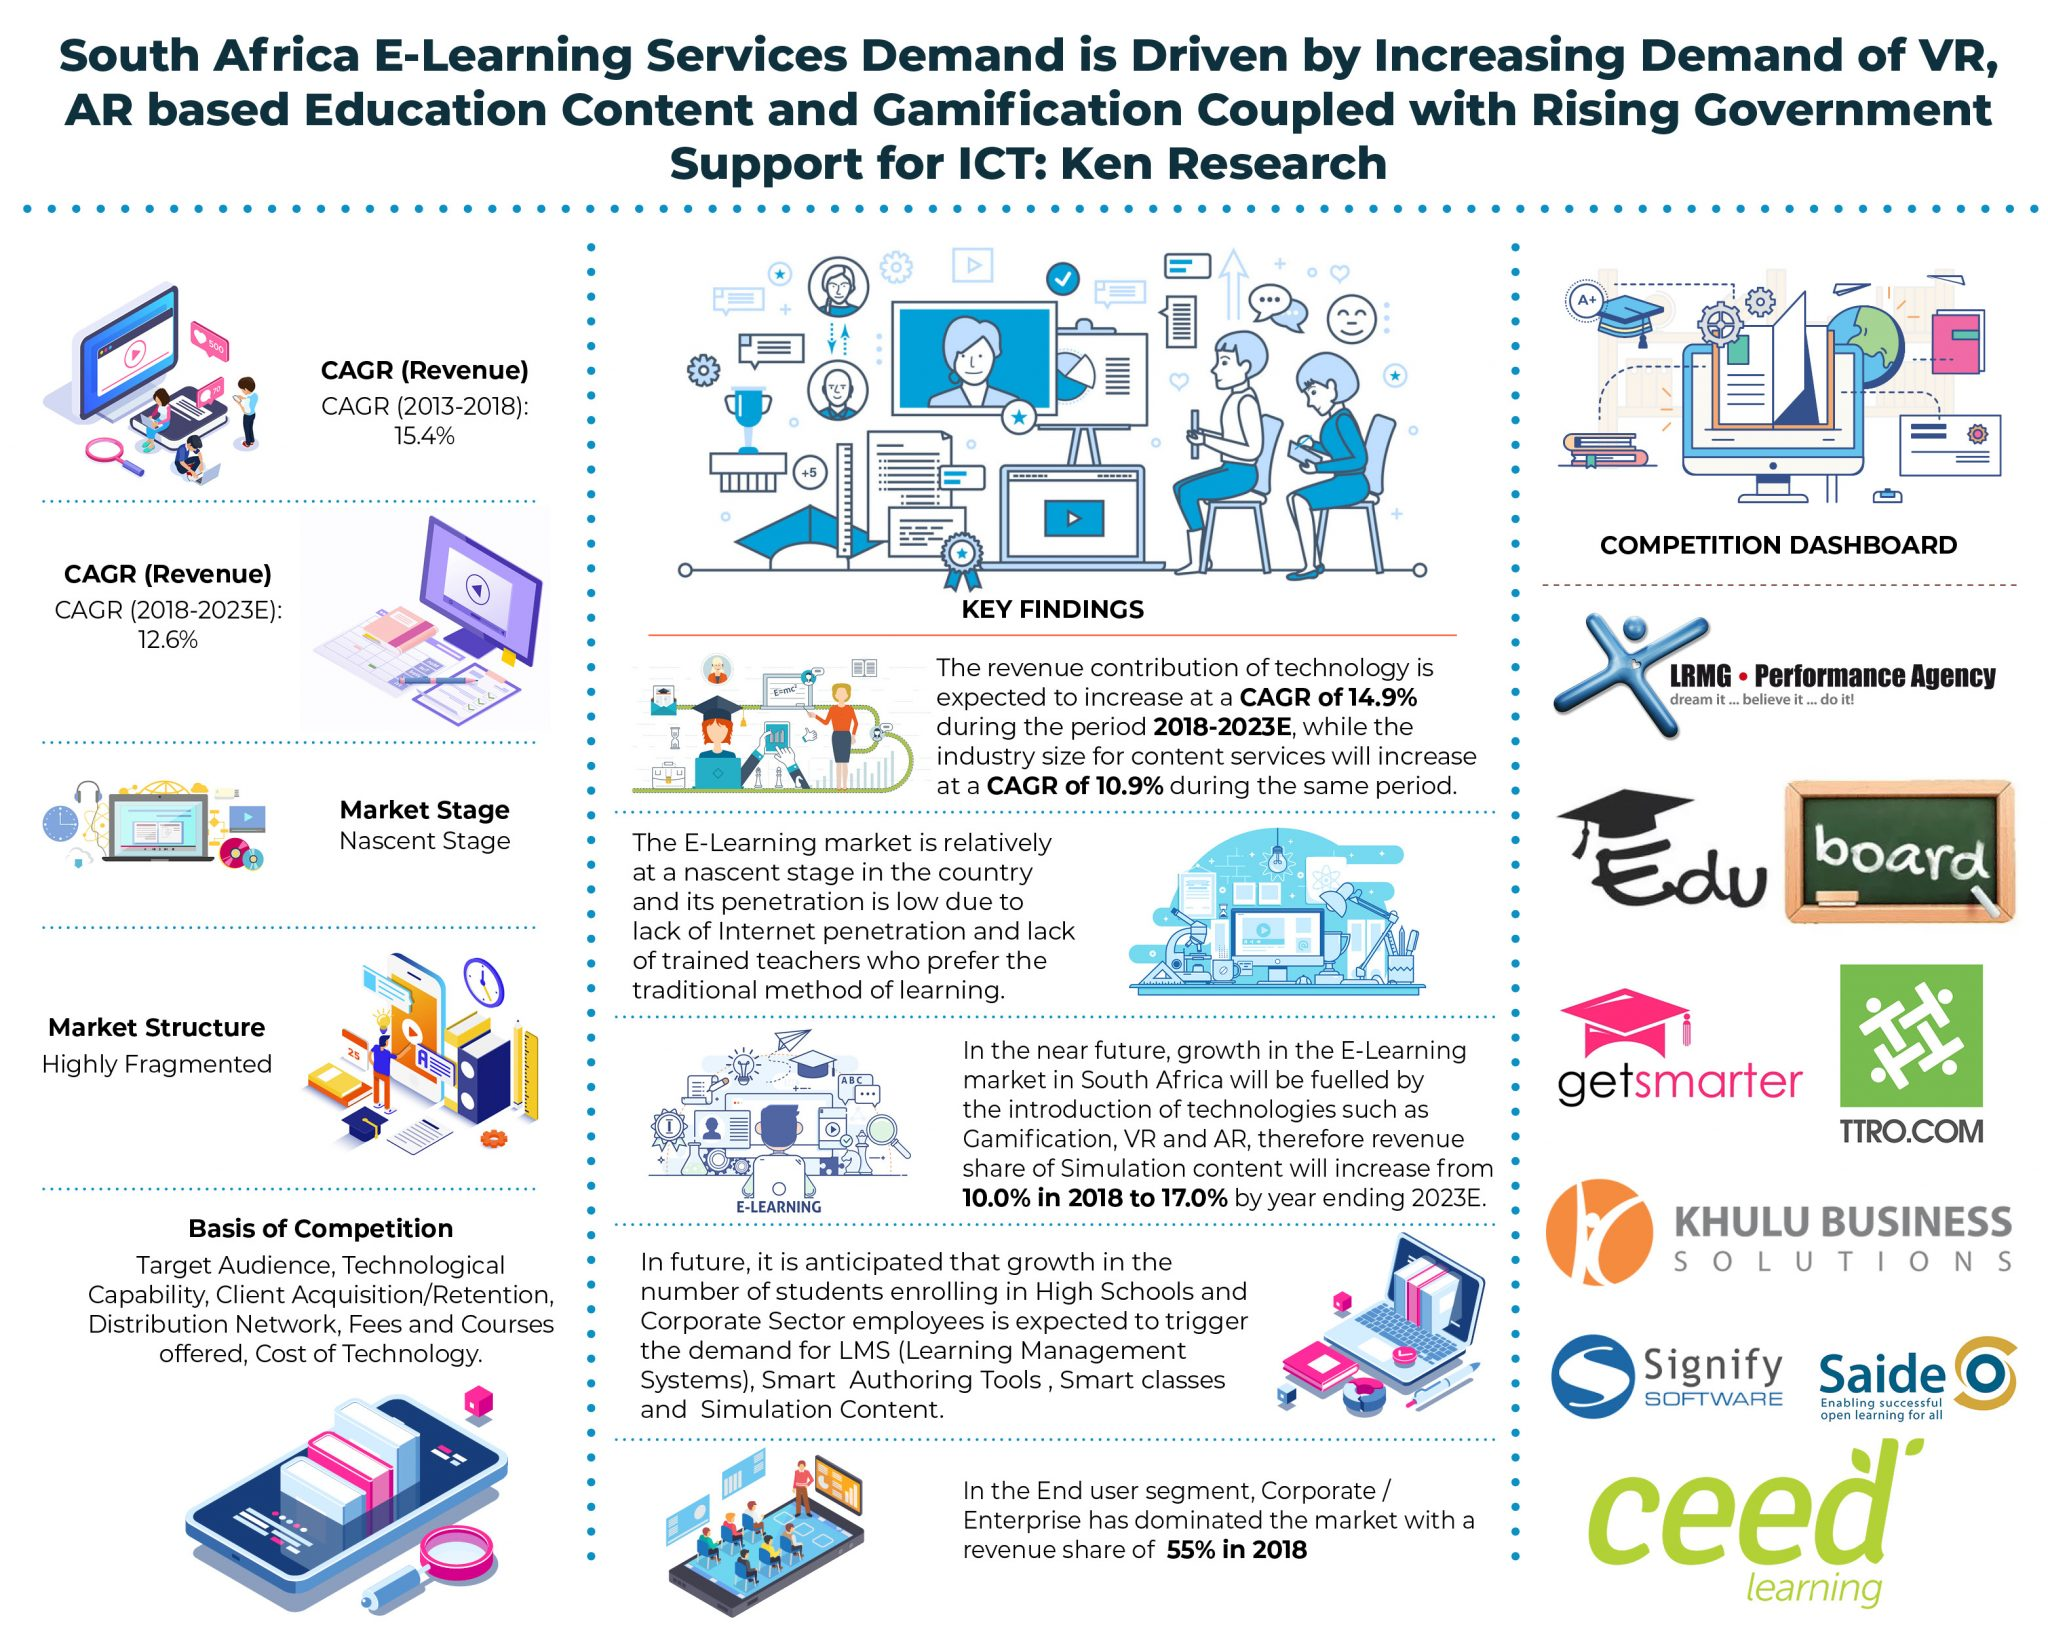 South Africa E-Learning Market